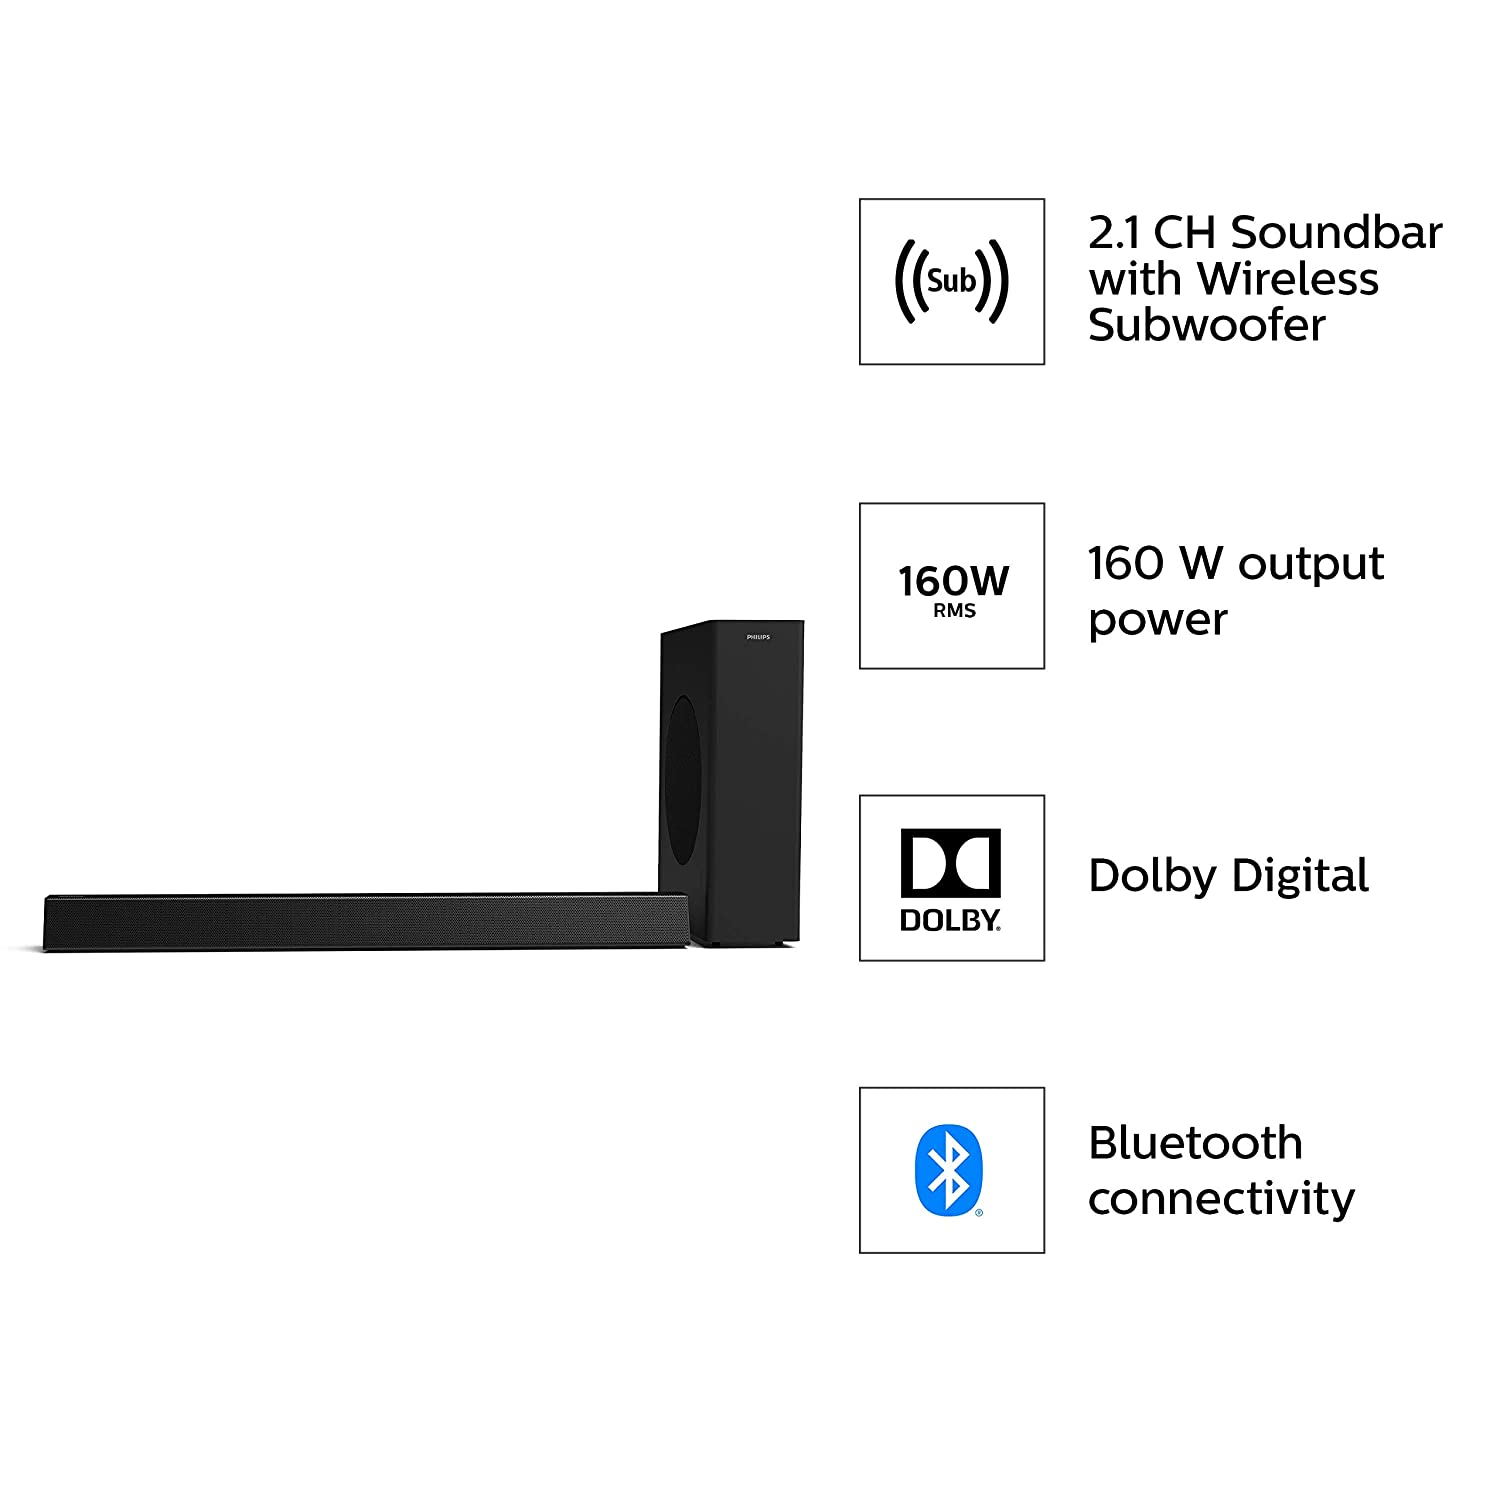 Philips HTL3310 2.1 CH 160 W Bluetooth Soundbar with